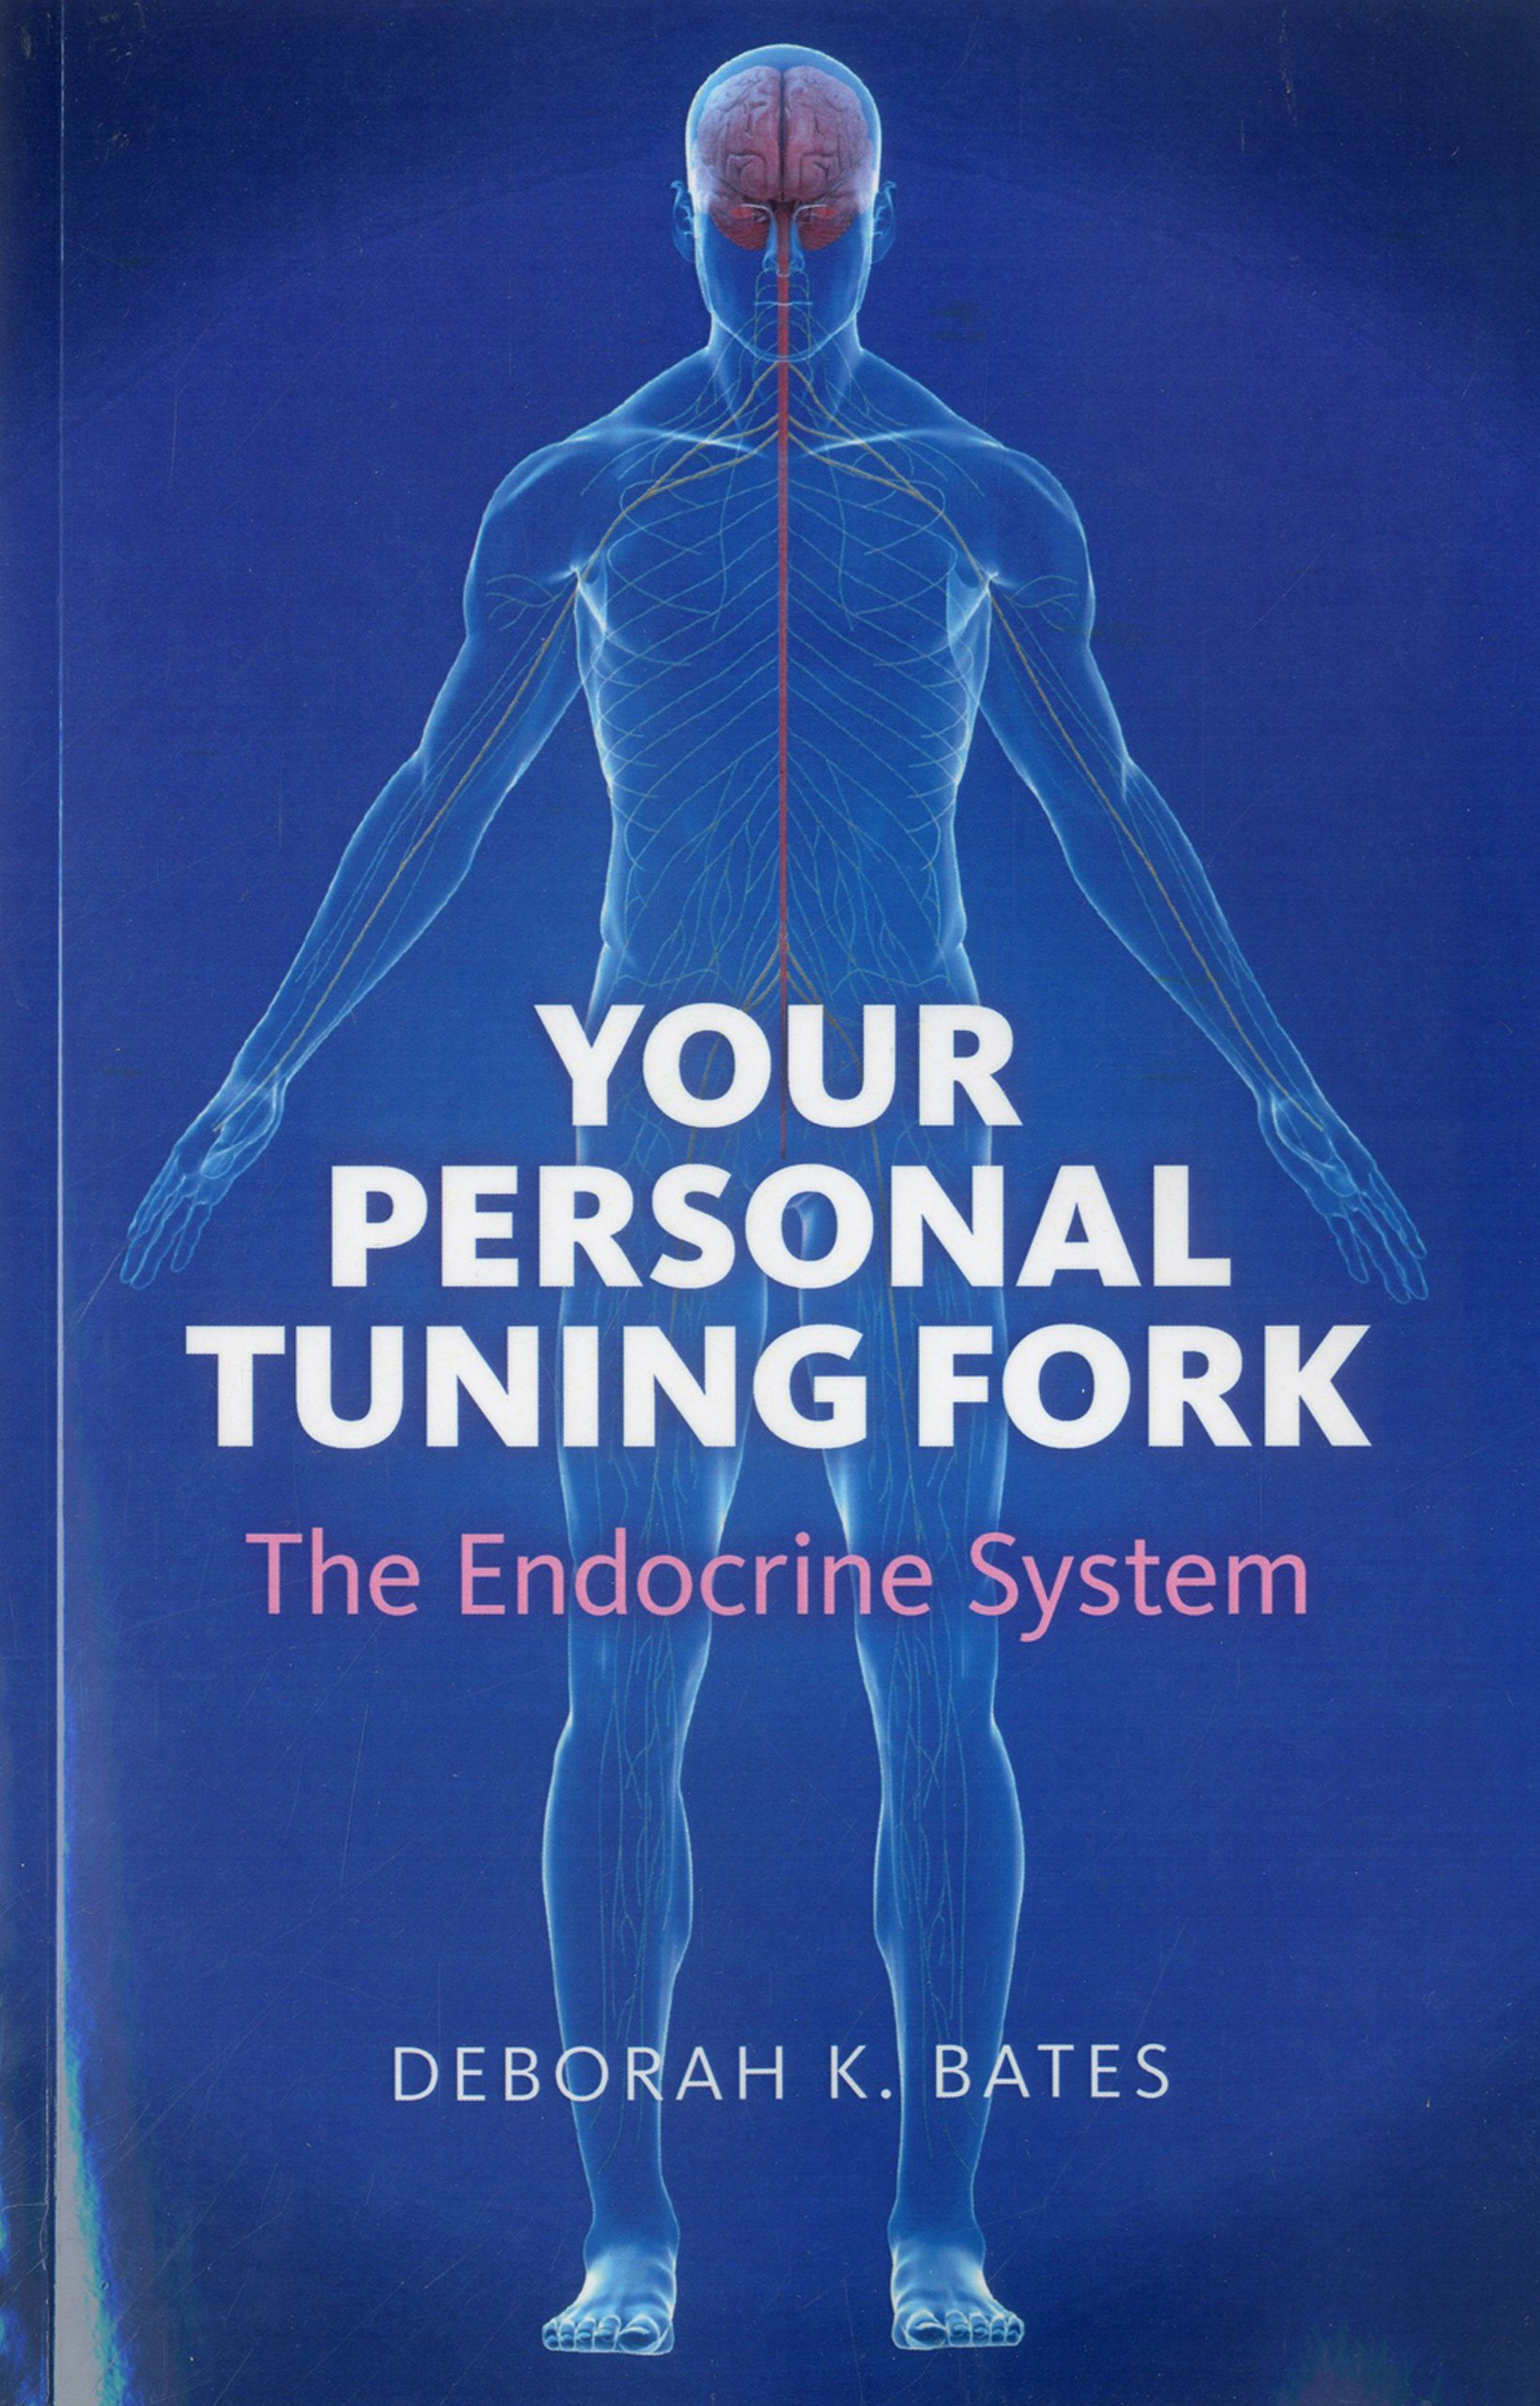 Your Personal Tuning Fork: The Endocrine System: Deborah Bates ...